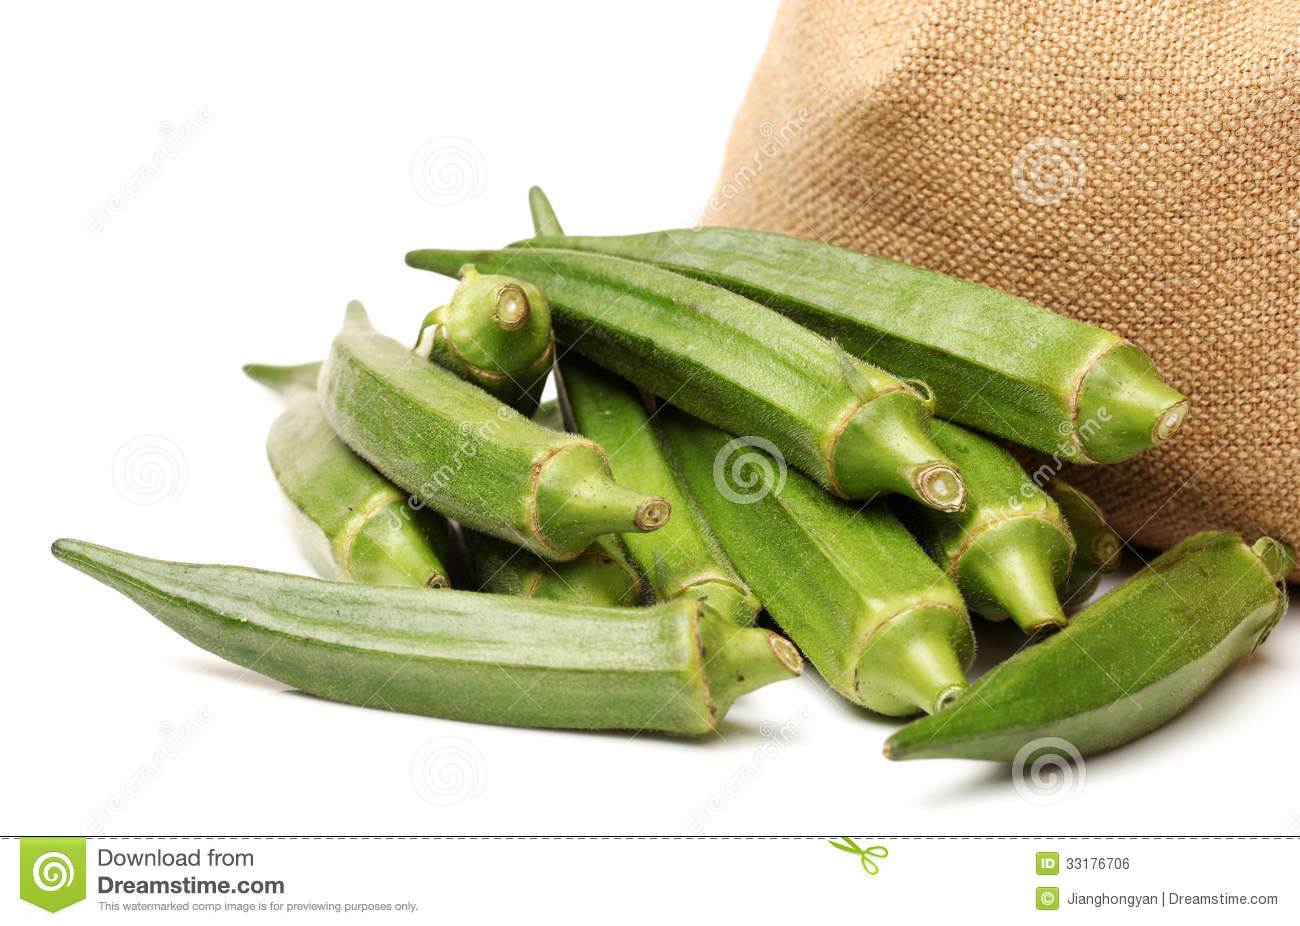 how to cook fresh okra